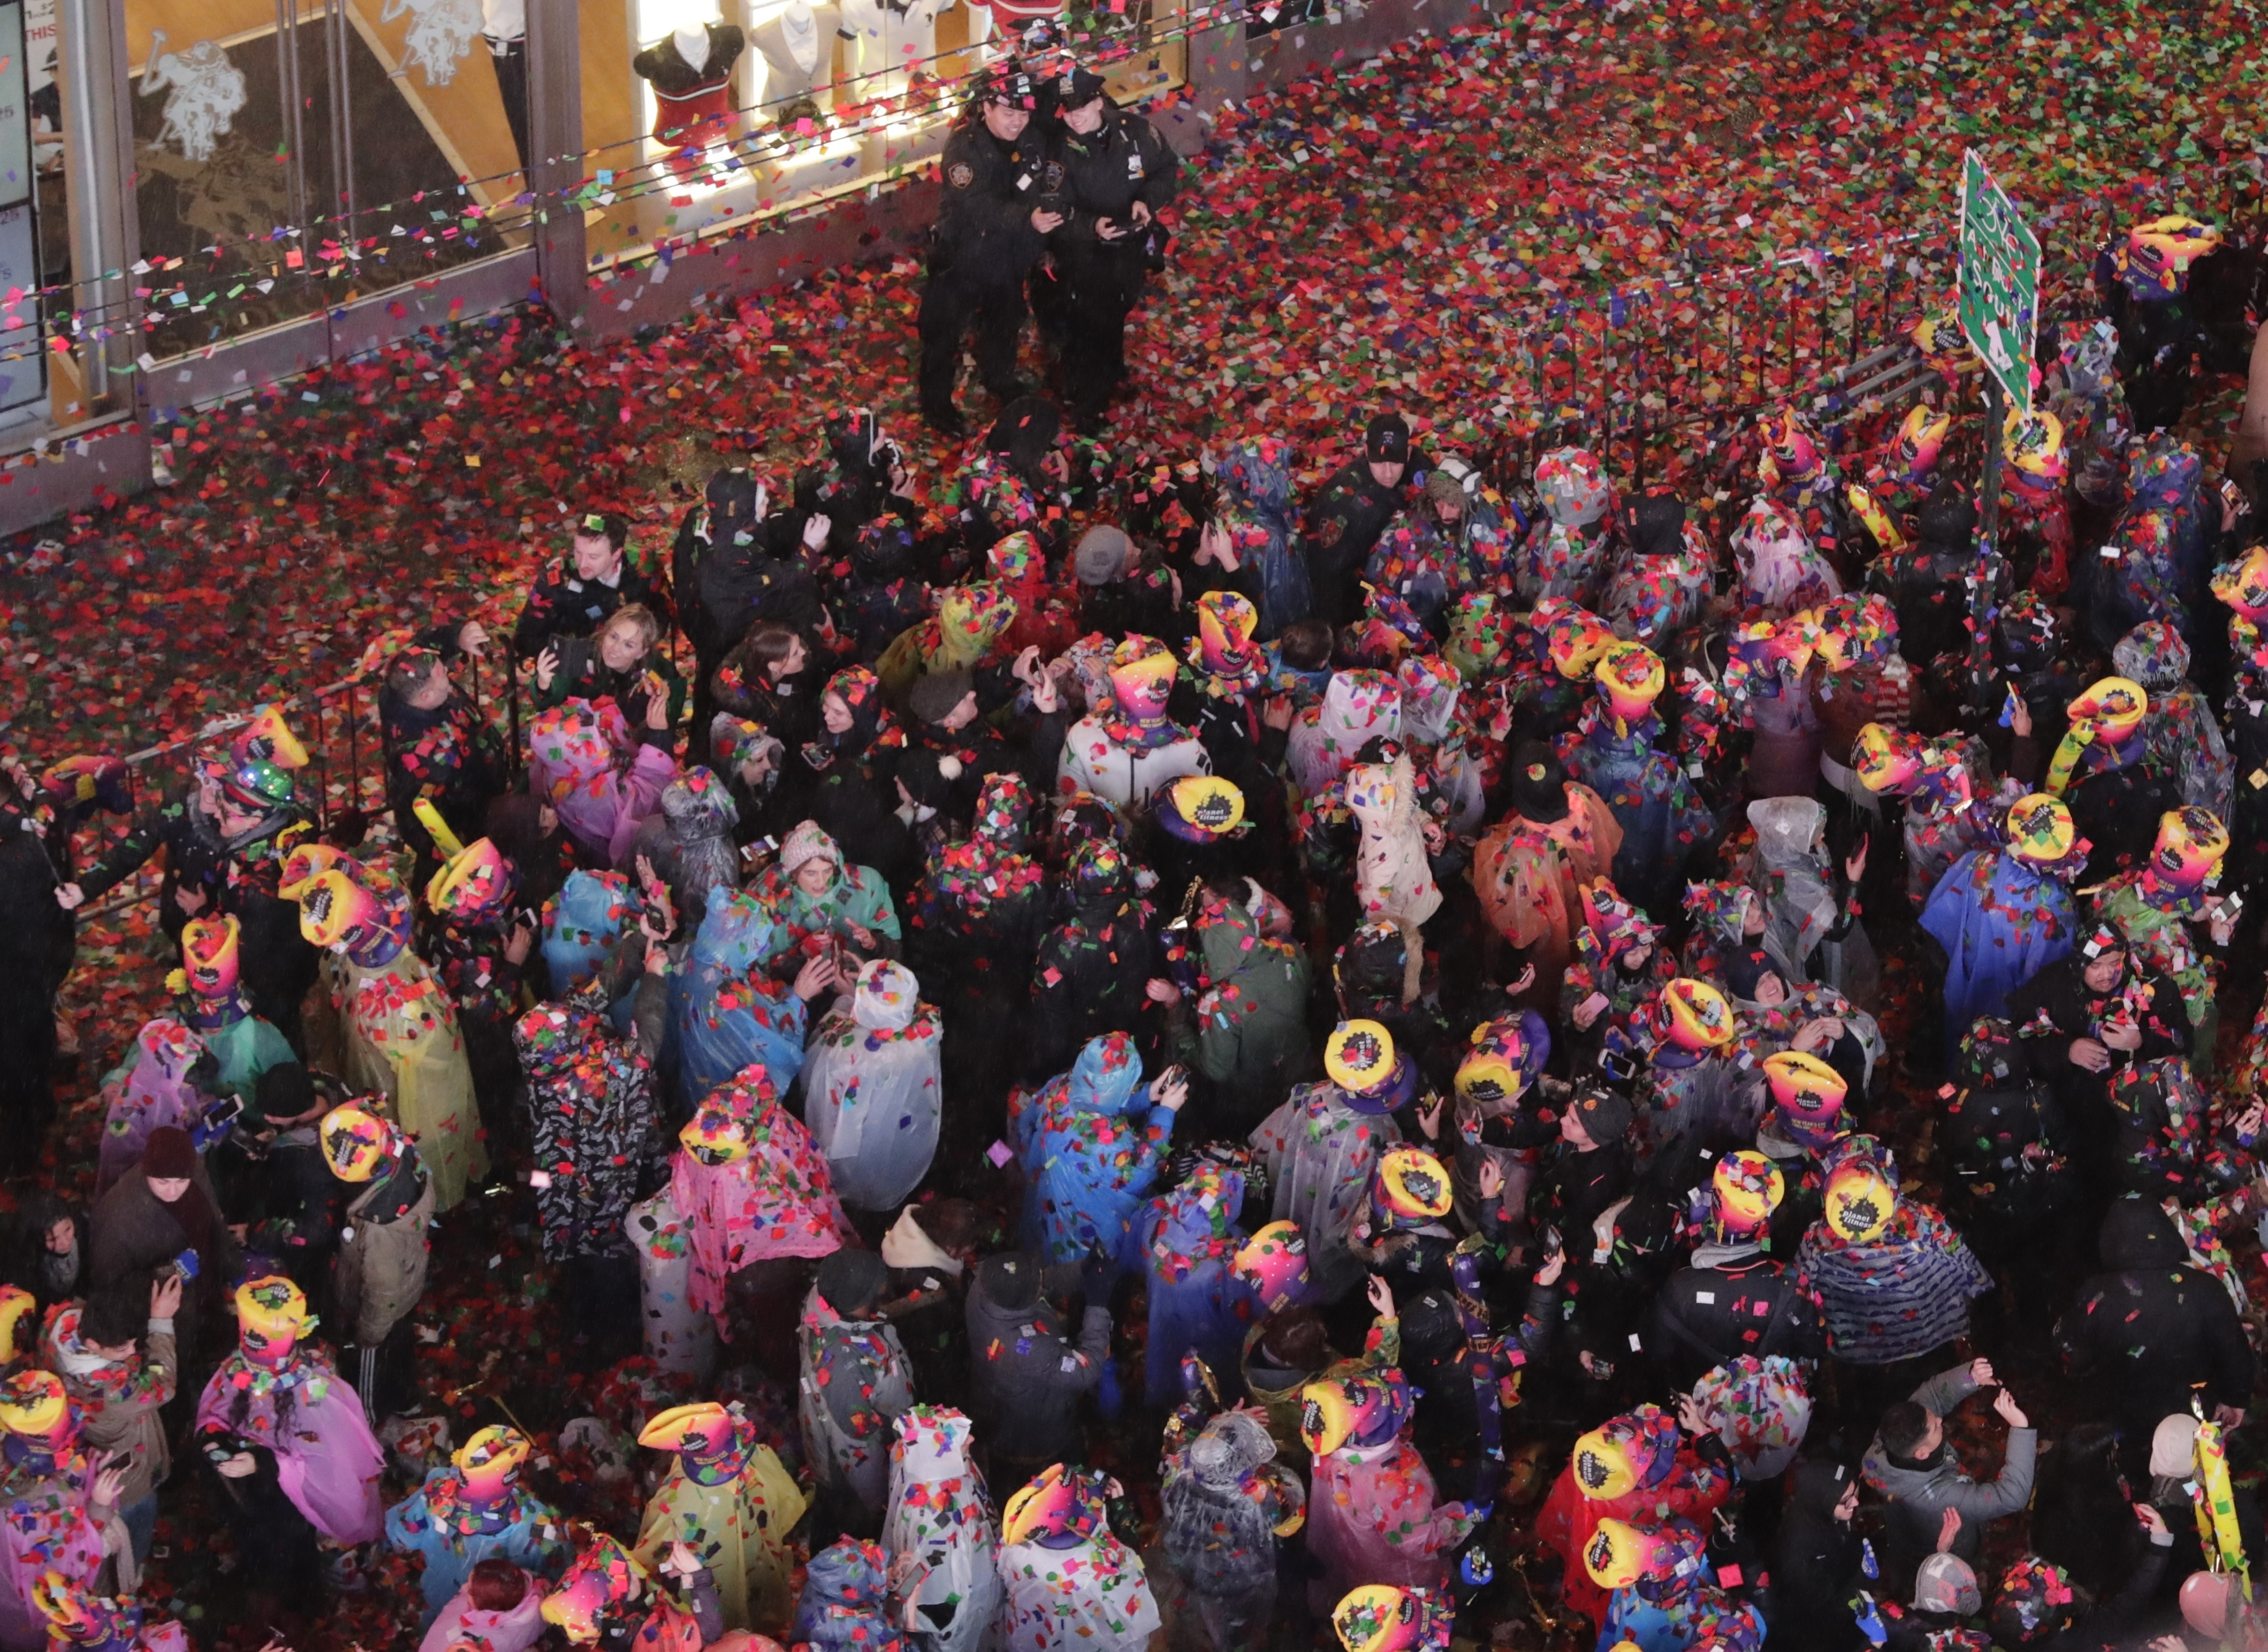 Confetti covers the crowd during the New Year's celebration in Times Square, New York